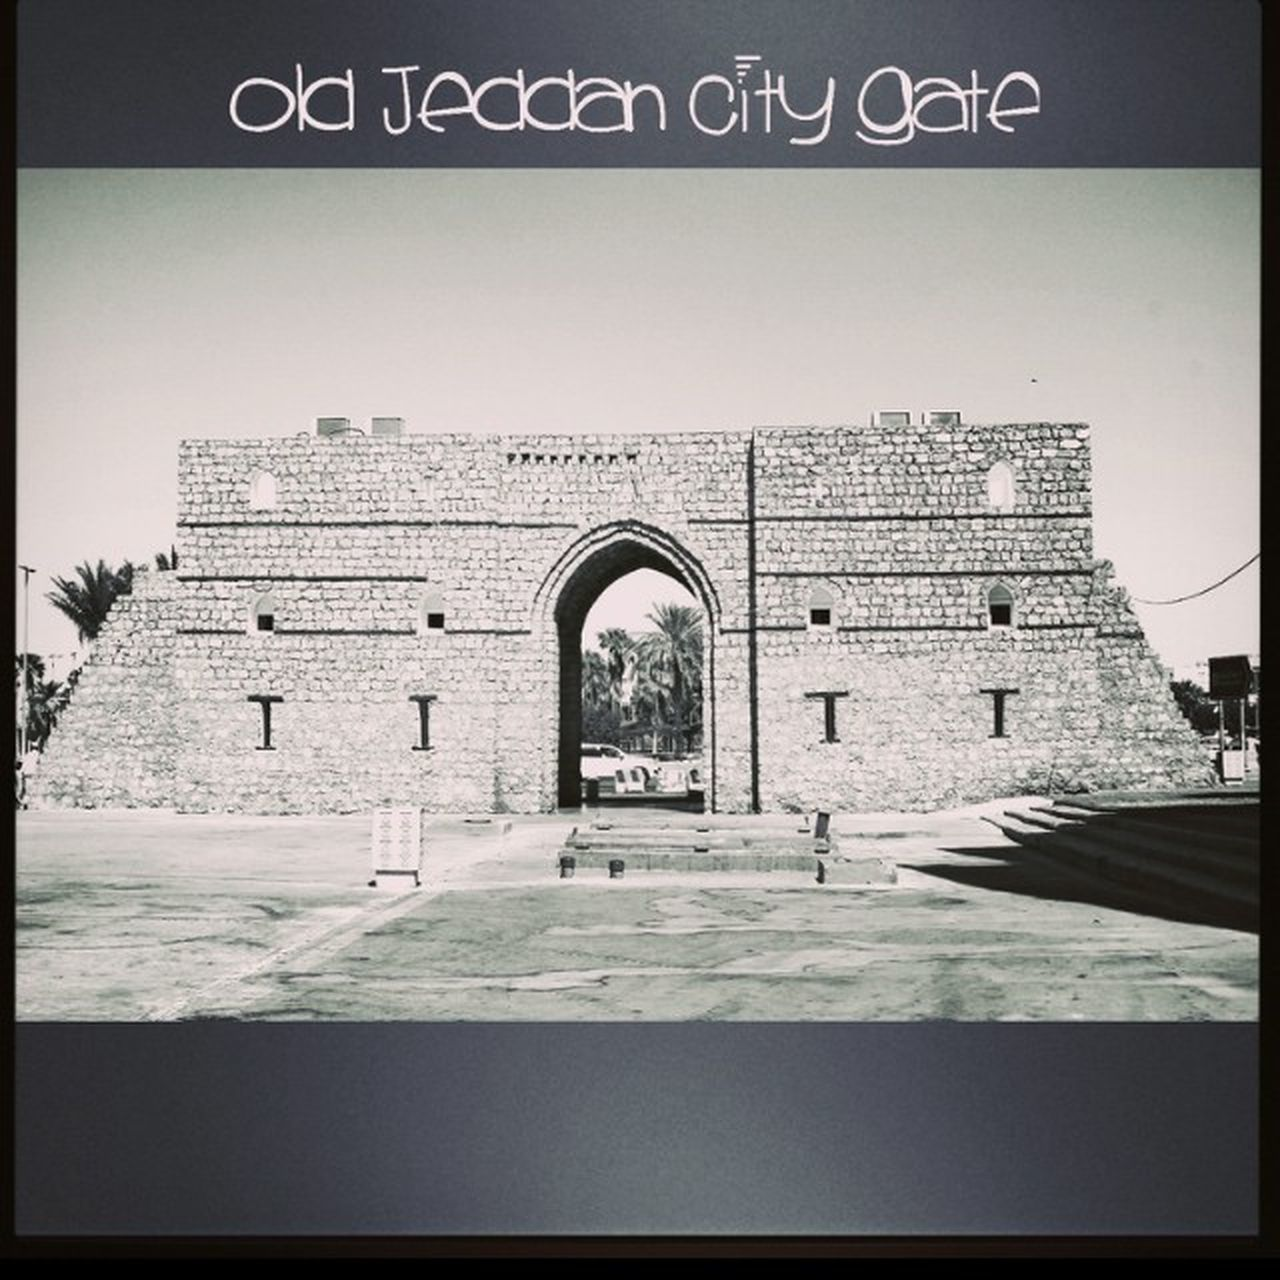 Old Jeddah City entrance in Al-Balad Old Albalad Revisitingthehistory Vintagestyle picturesque canon canon1100d photographer jeddah ksa